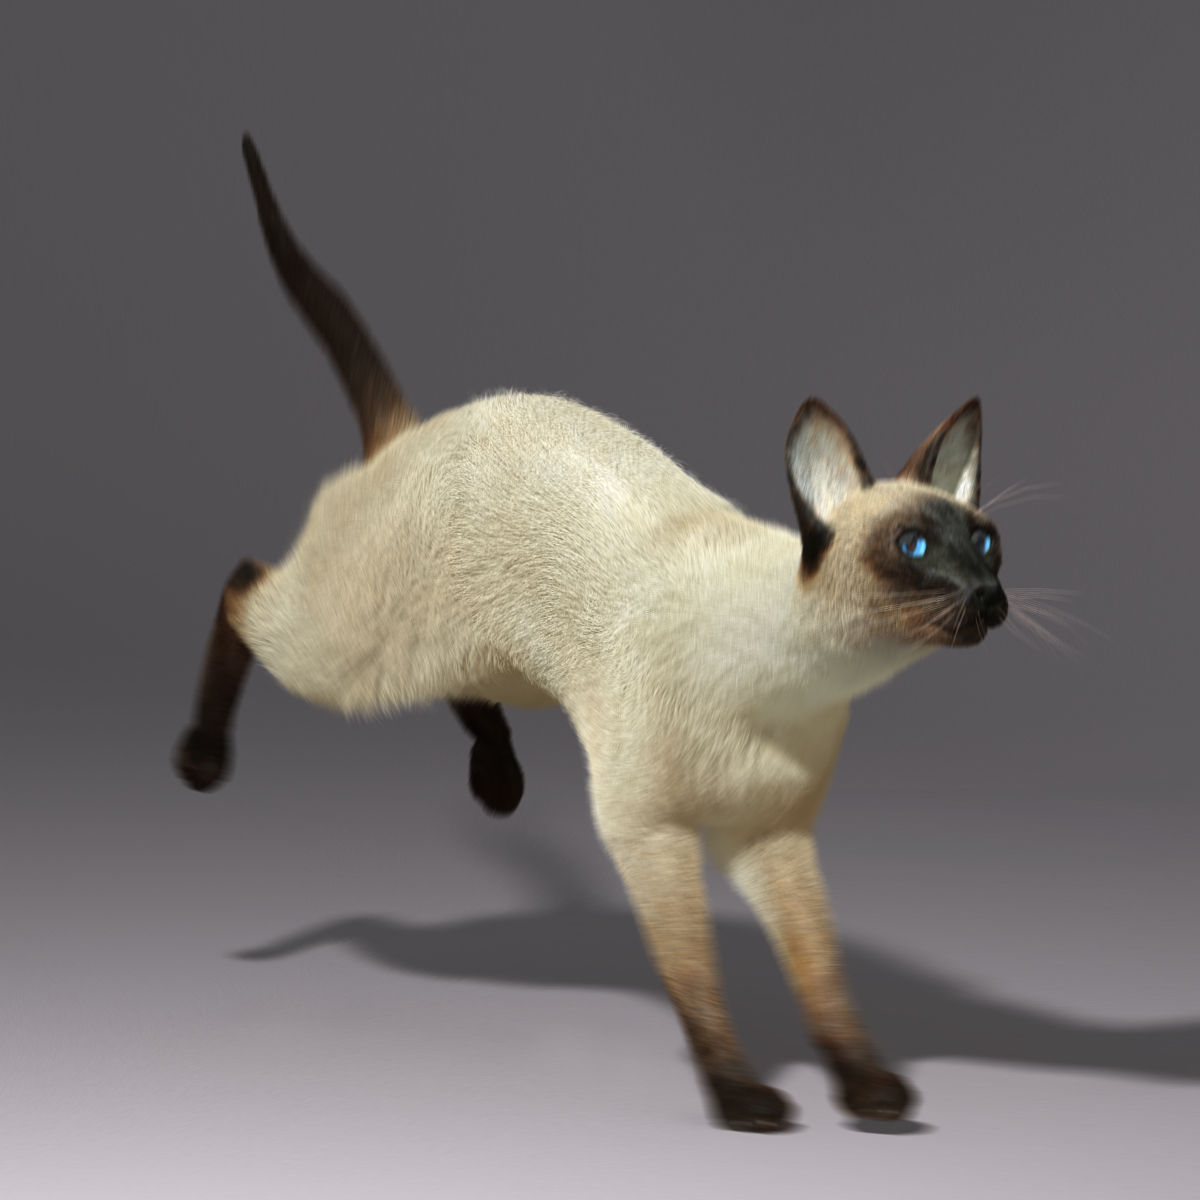 siamese cat 3d model - photo #18